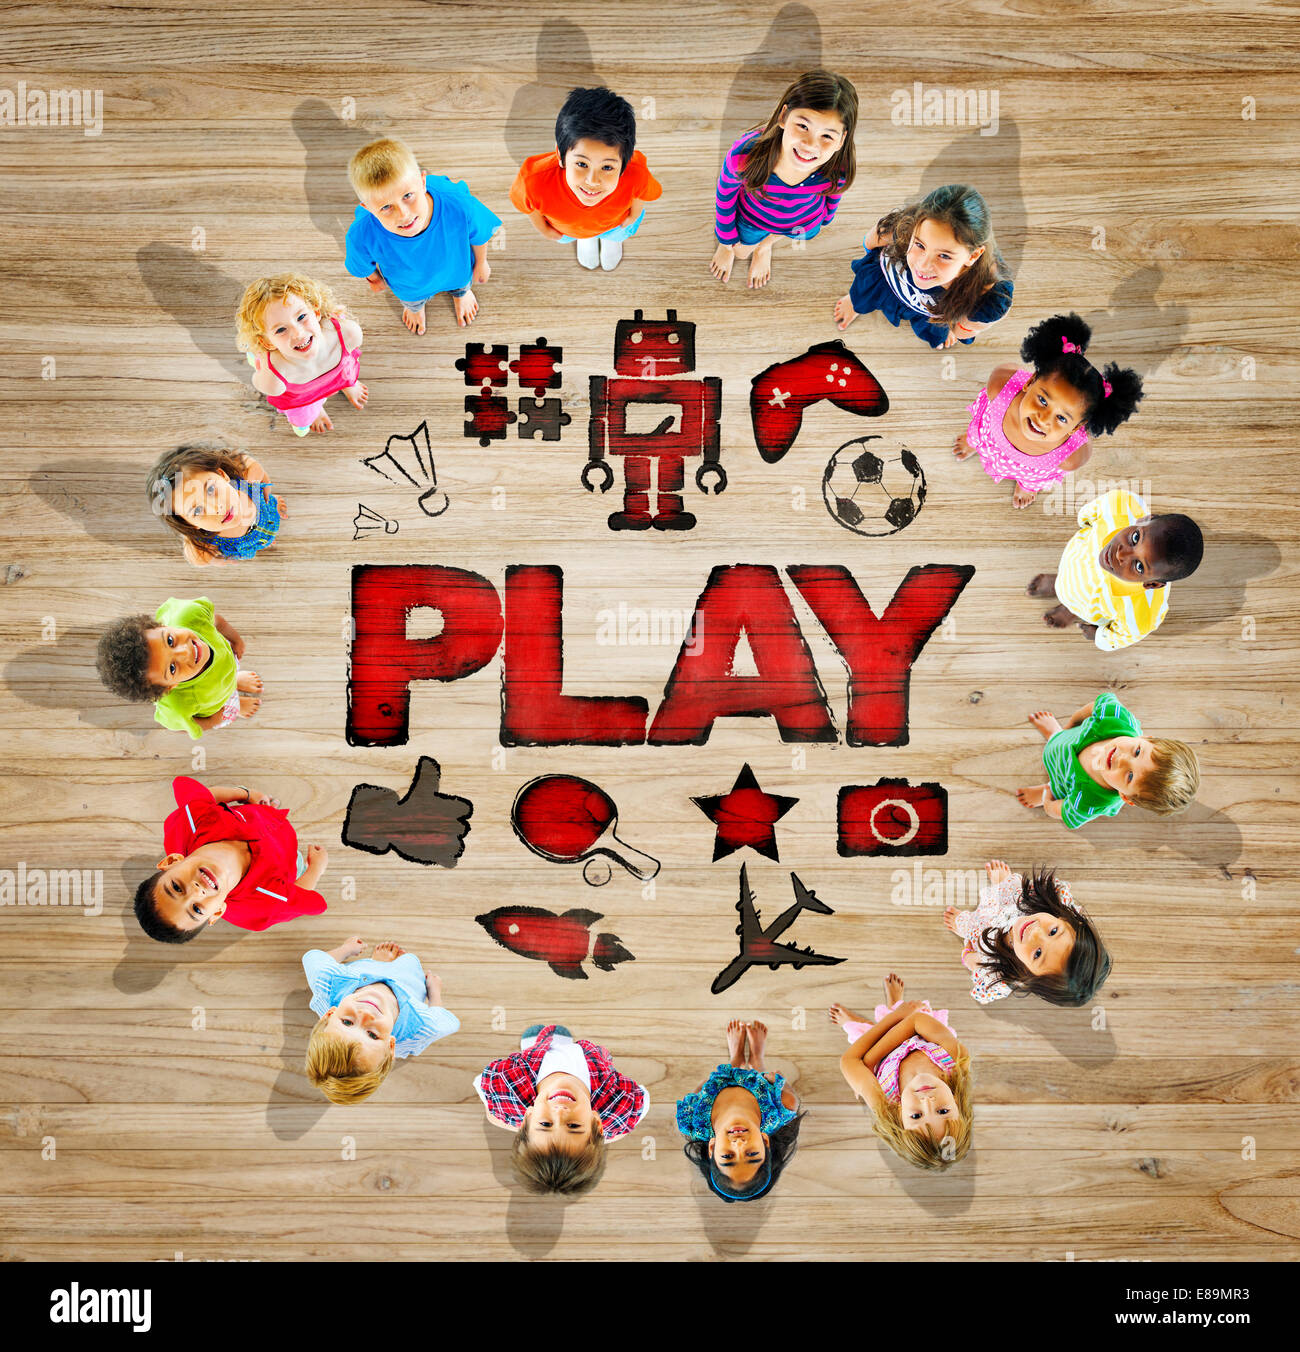 Multiethnic Group of Children with Play Concept - Stock Image